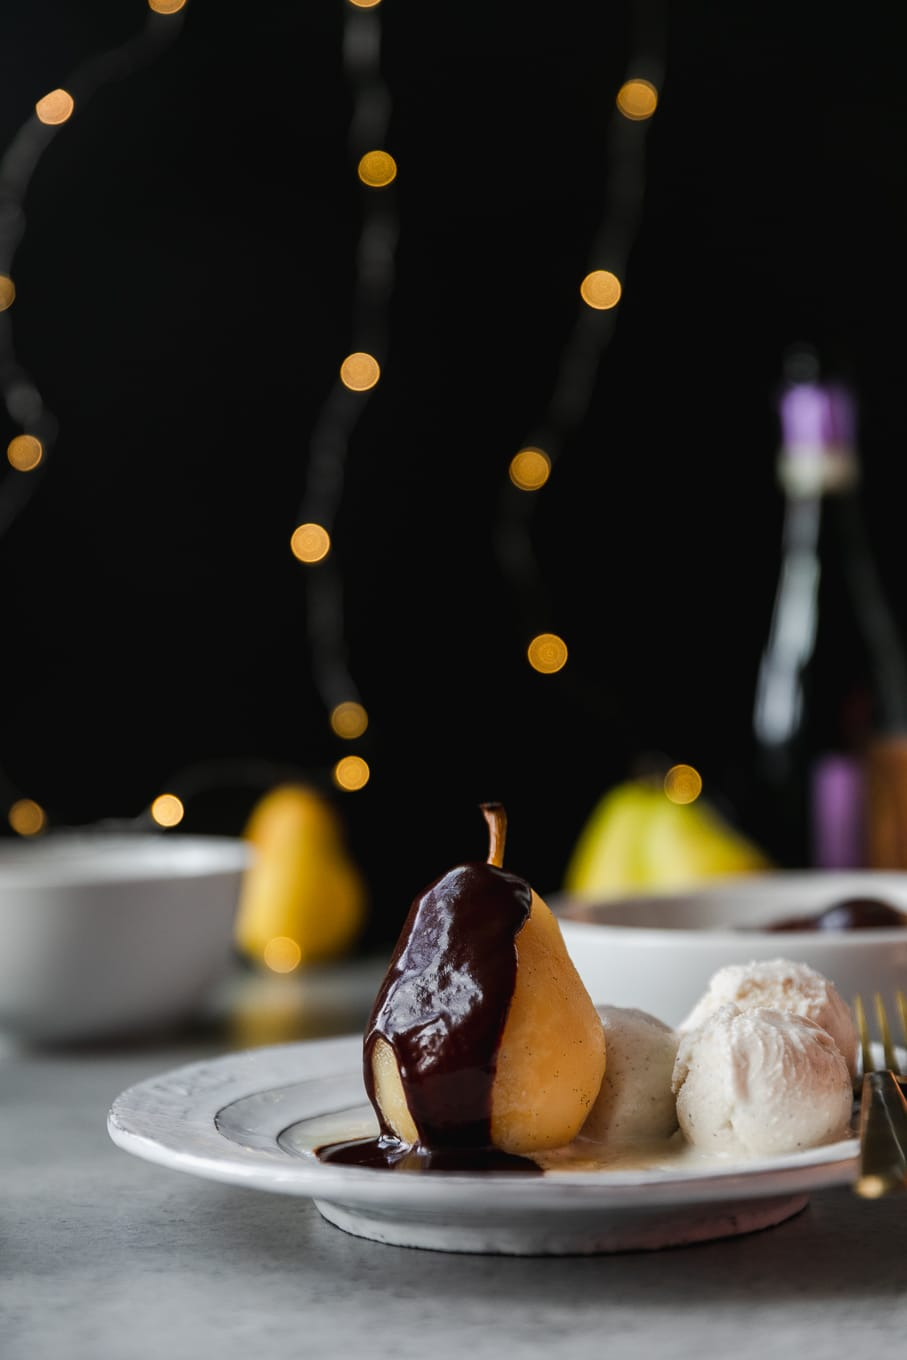 Forward facing shot of a poached pear drizzled with dark chocolate fudge sauce and ice cream on the side on a white plate with a black background and twinkle lights behind it